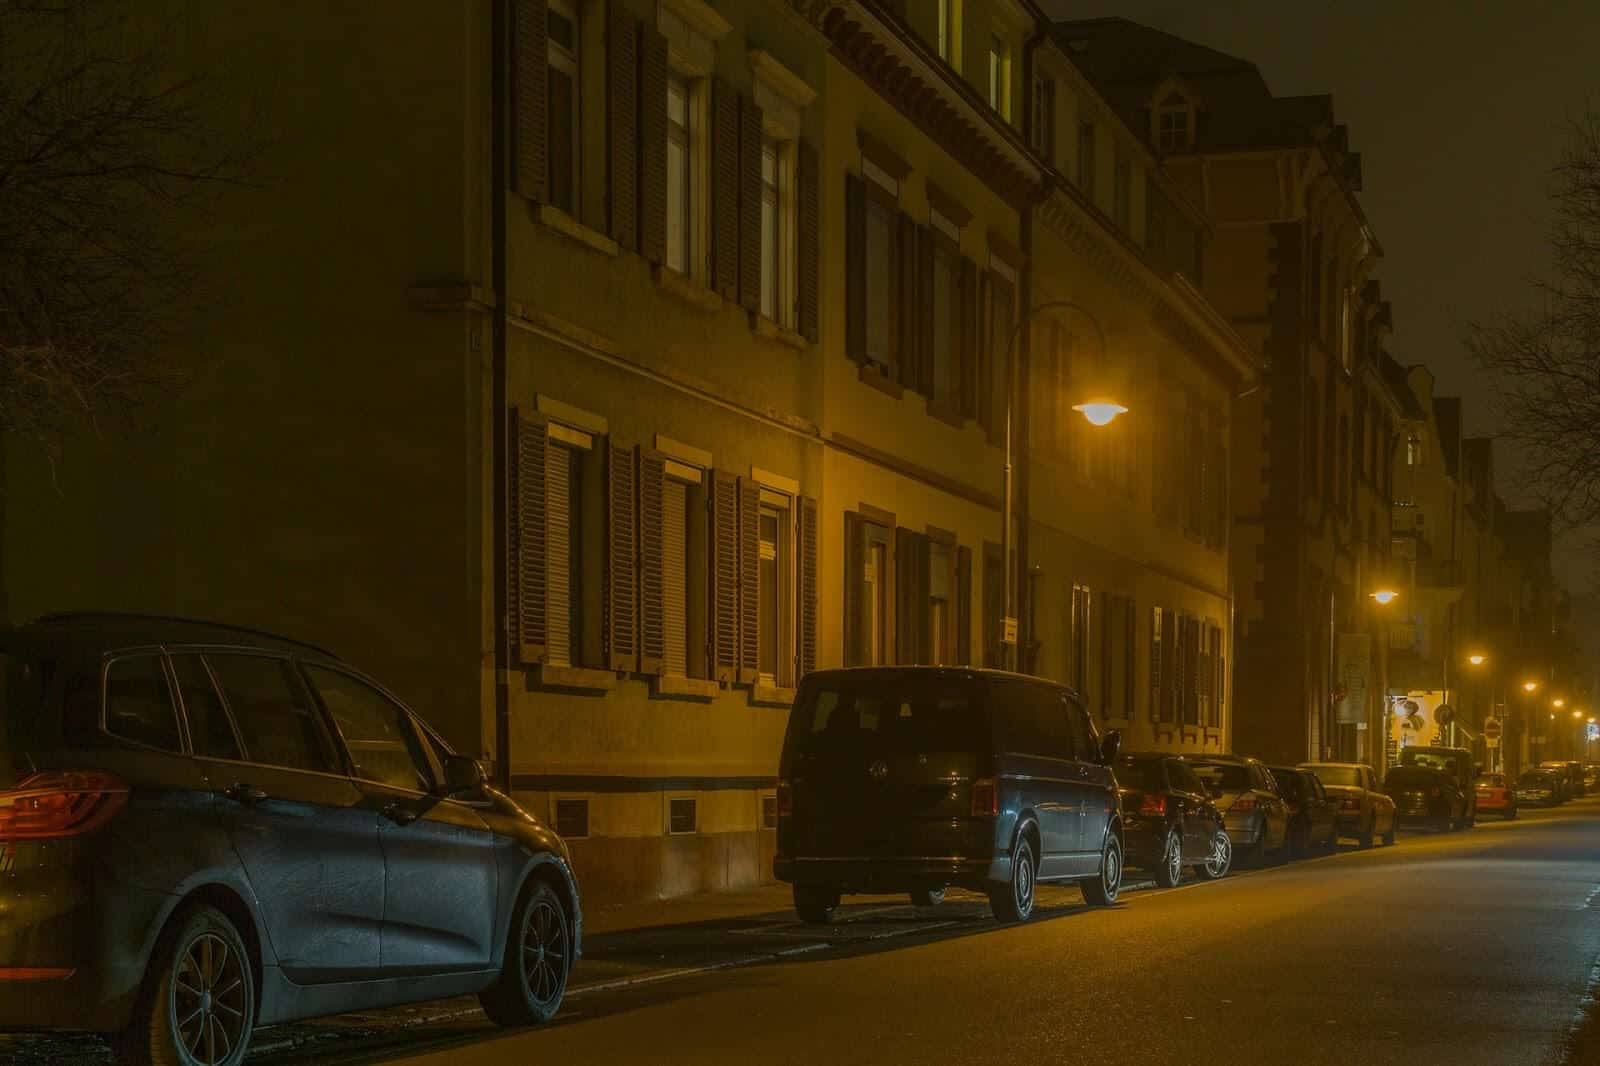 Cars parked on a dark street